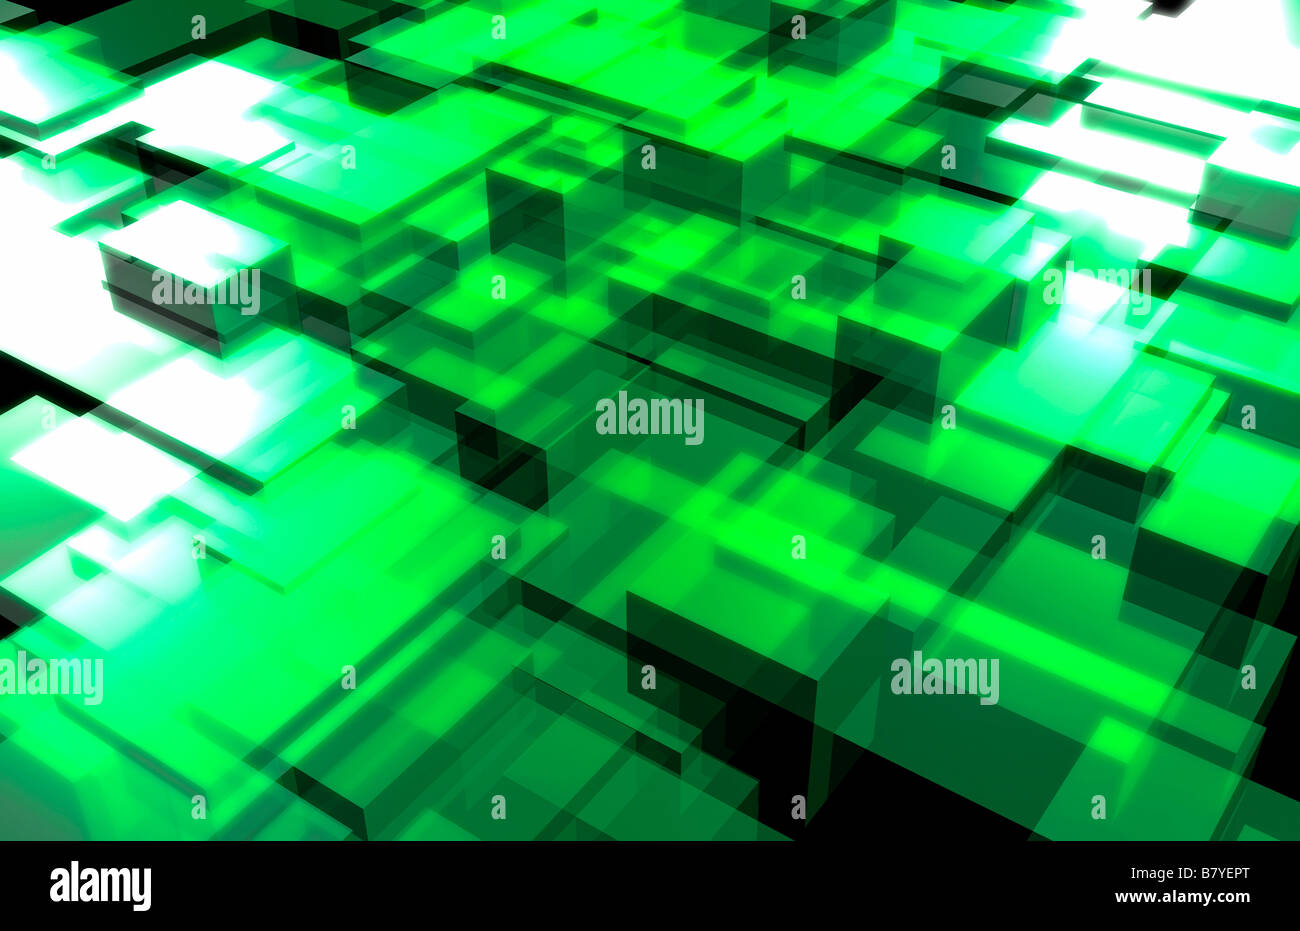 Green squares, abstract - Stock Image